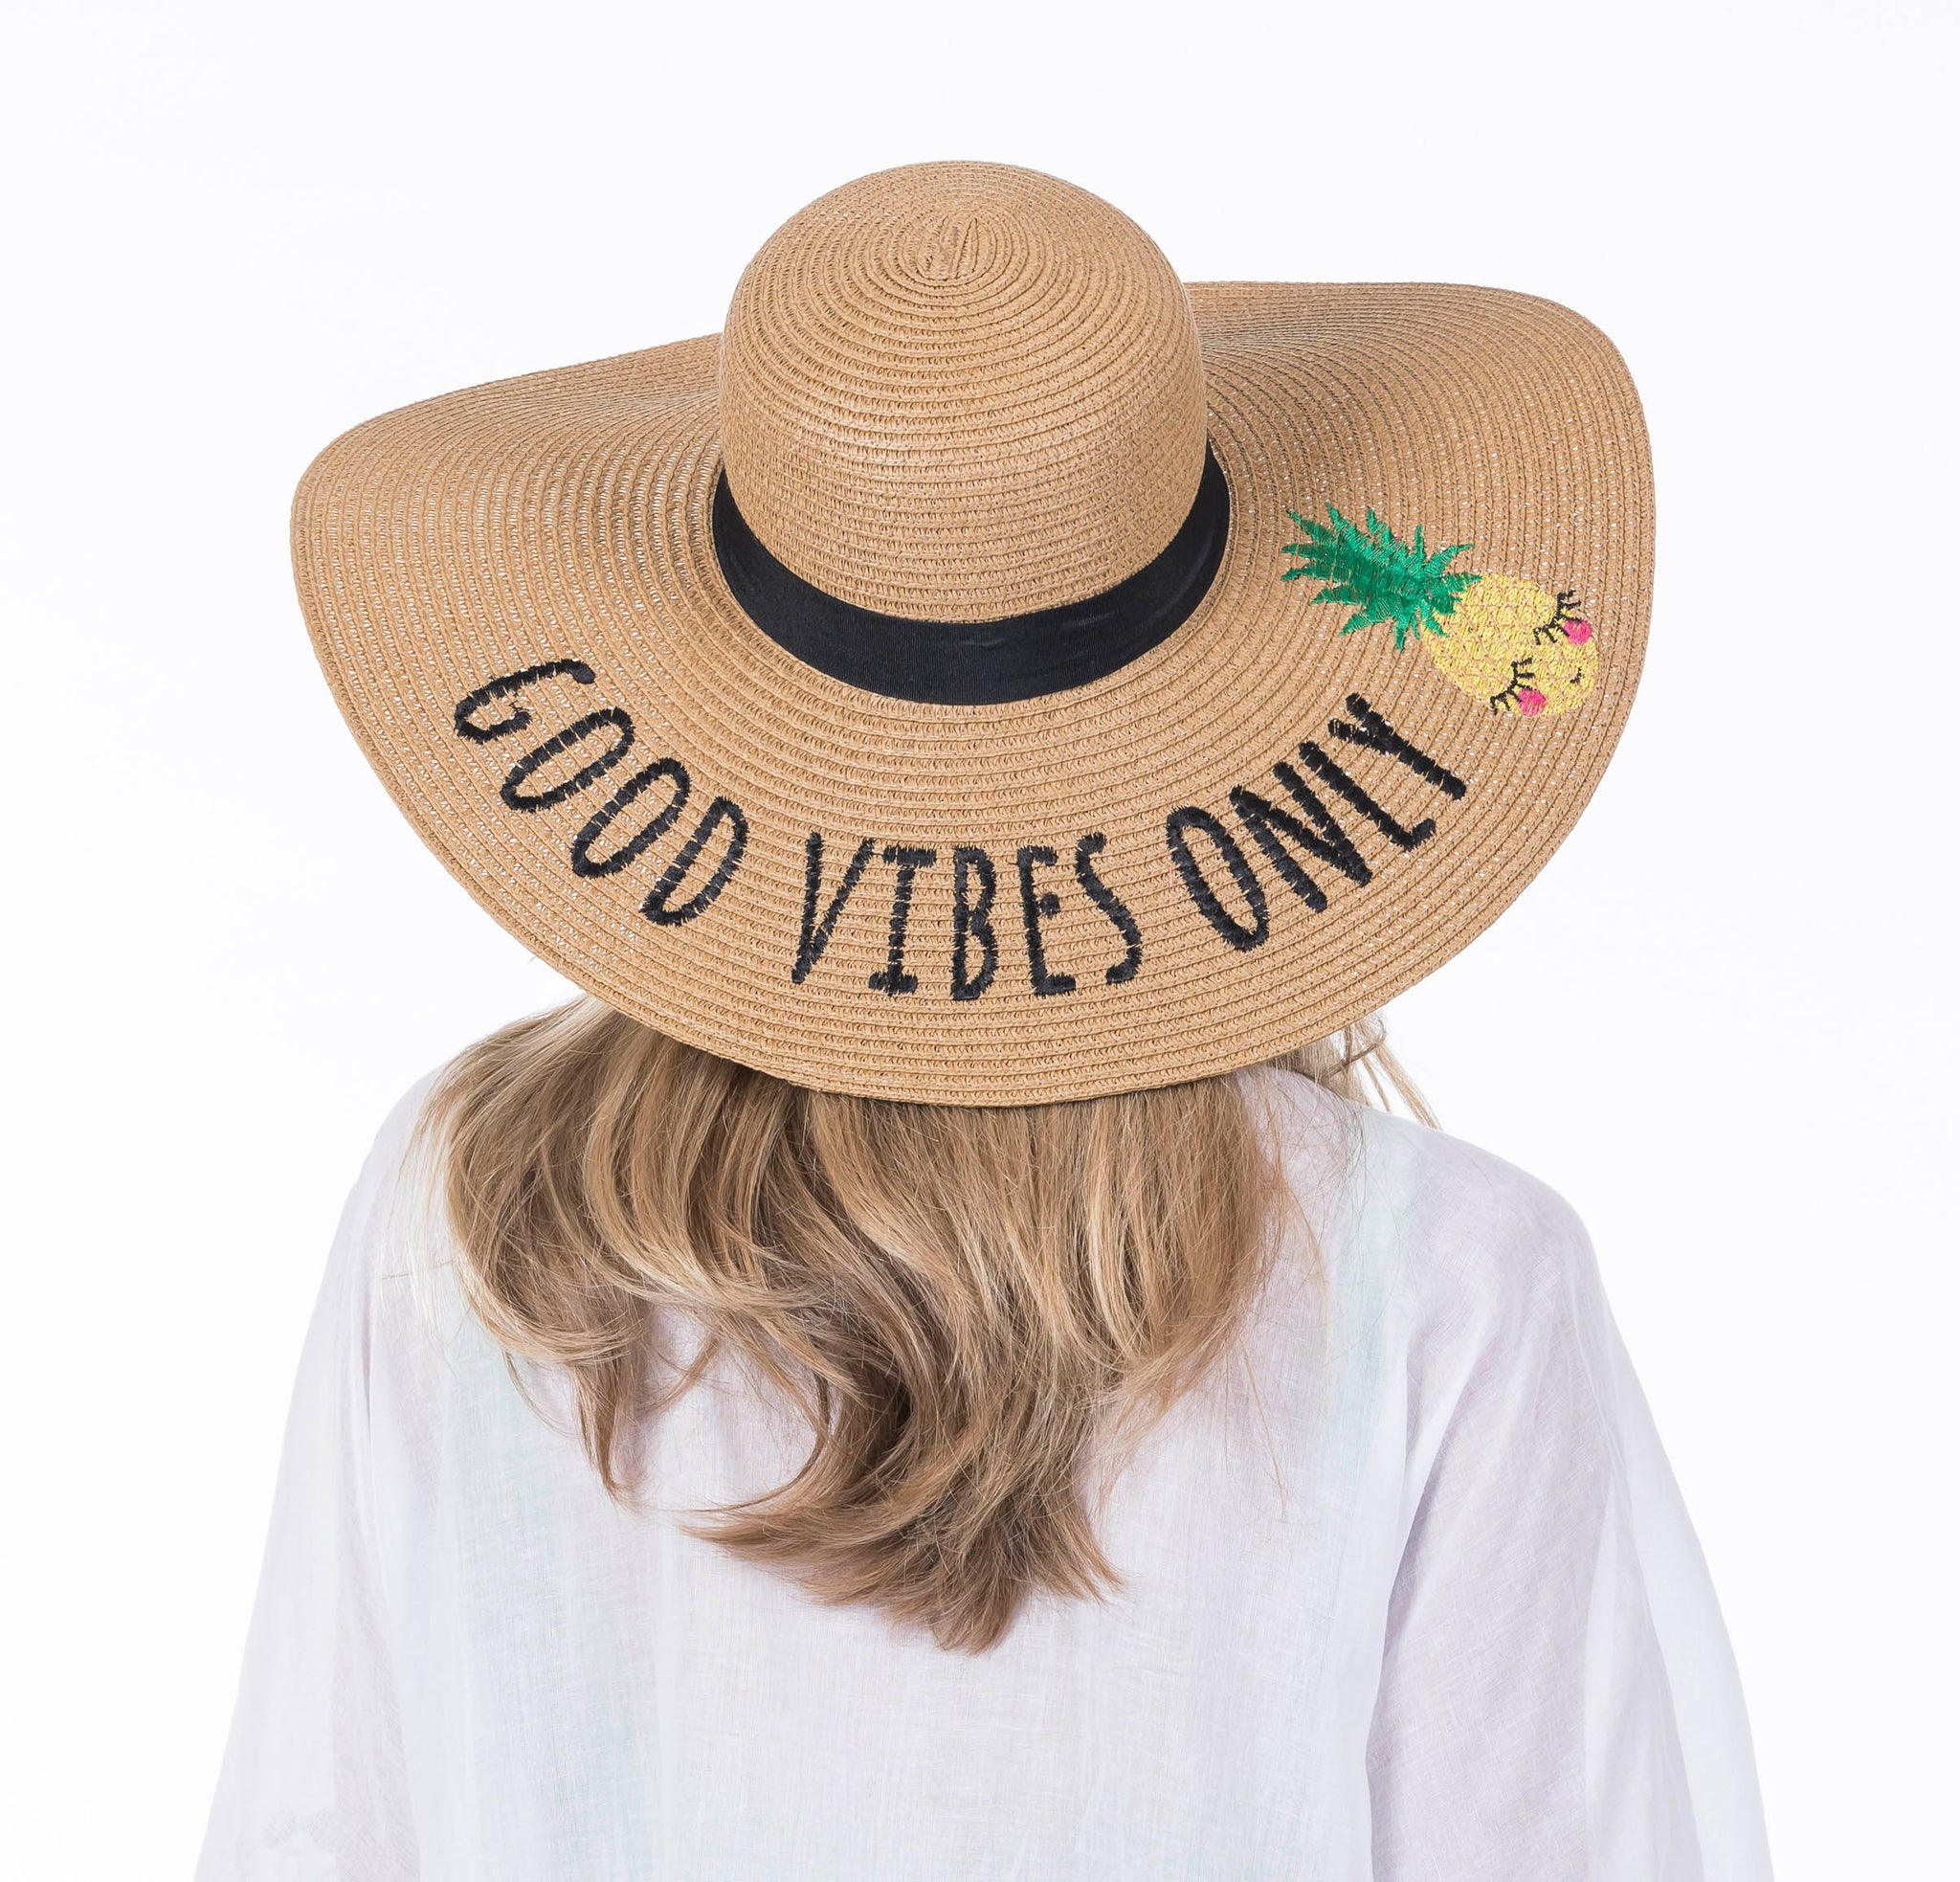 Katydid Good Vibes Only Wholesale Sun Hats for Women